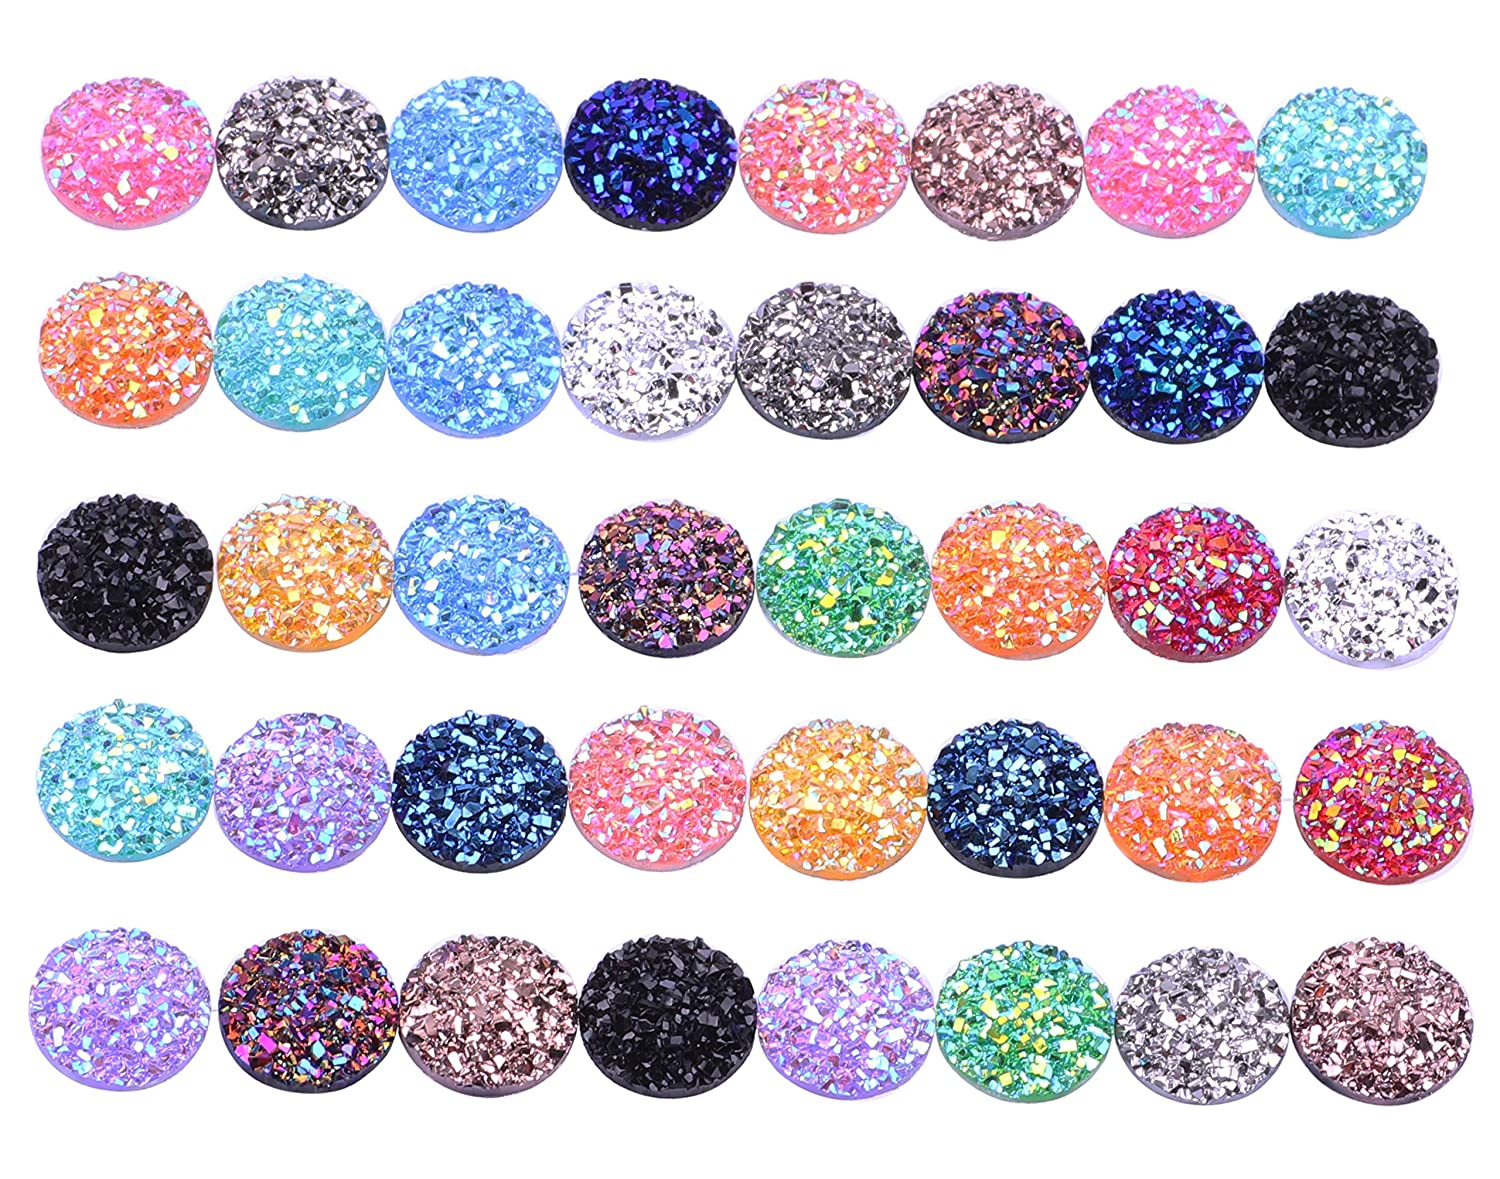 100 Mix Color 12mm Round Flat Back Resin Cabochon Cameo Faux Druzy Cabochons Mermaid Deco Jewelry Making Yaoding